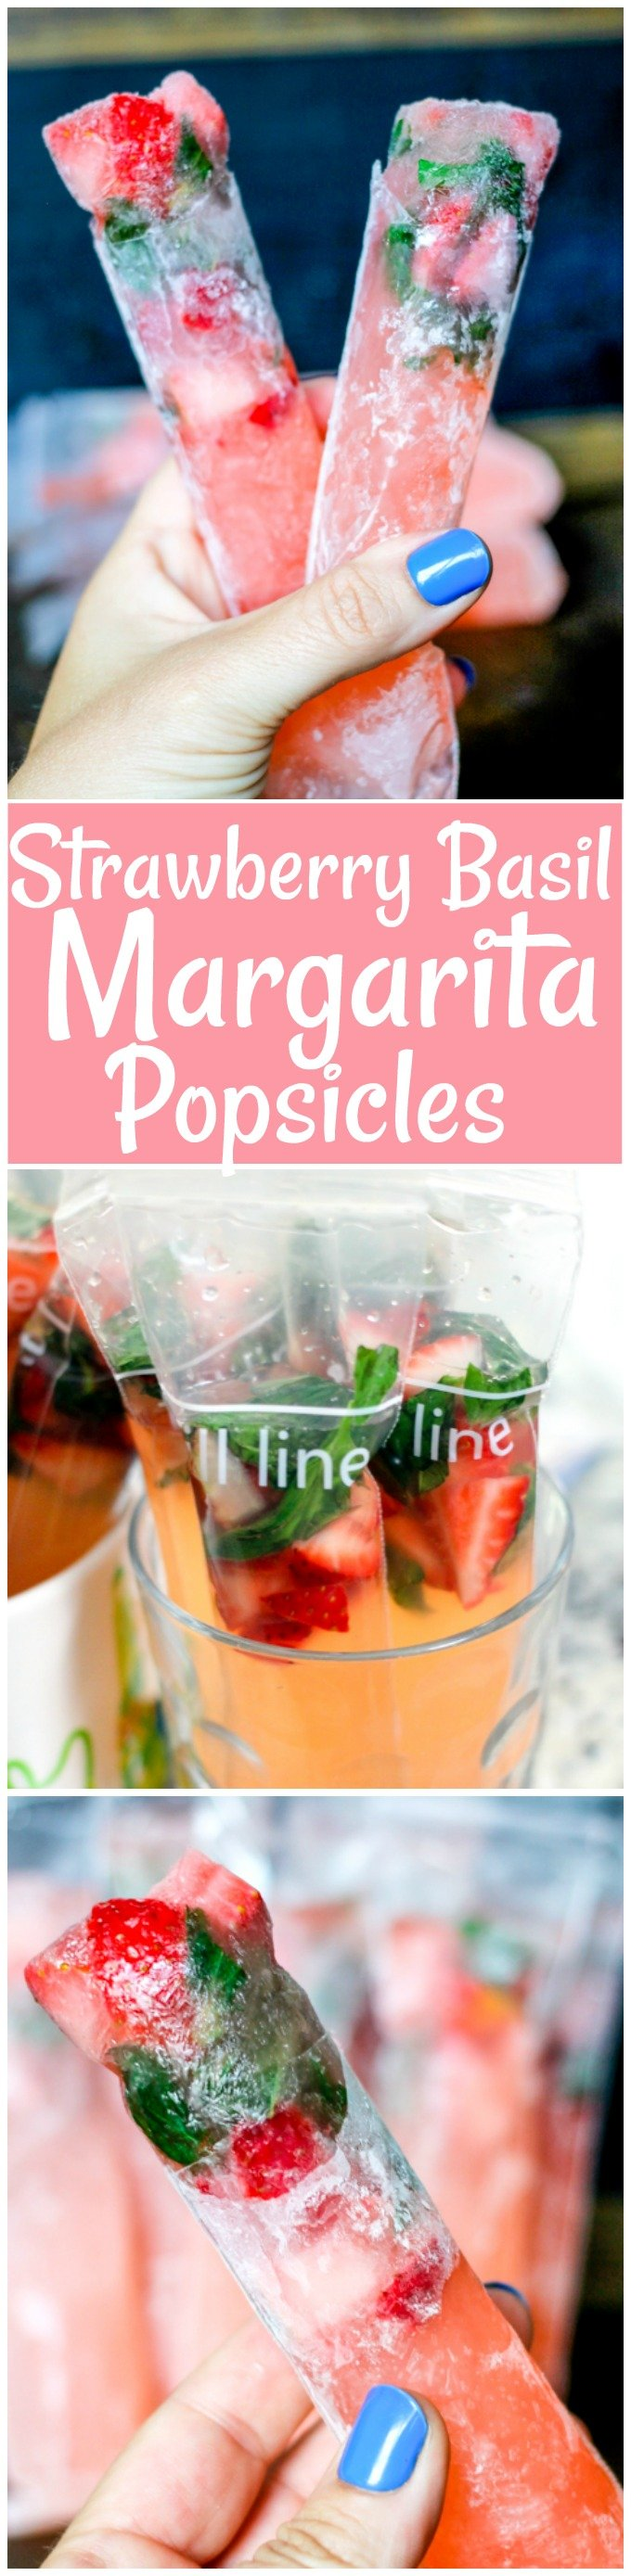 Strawberry Basil Margarita Popsicles are not only boozy and delicious, but they are simple to make! Everyone is going to be begging for this alcoholic popsicle this summer!